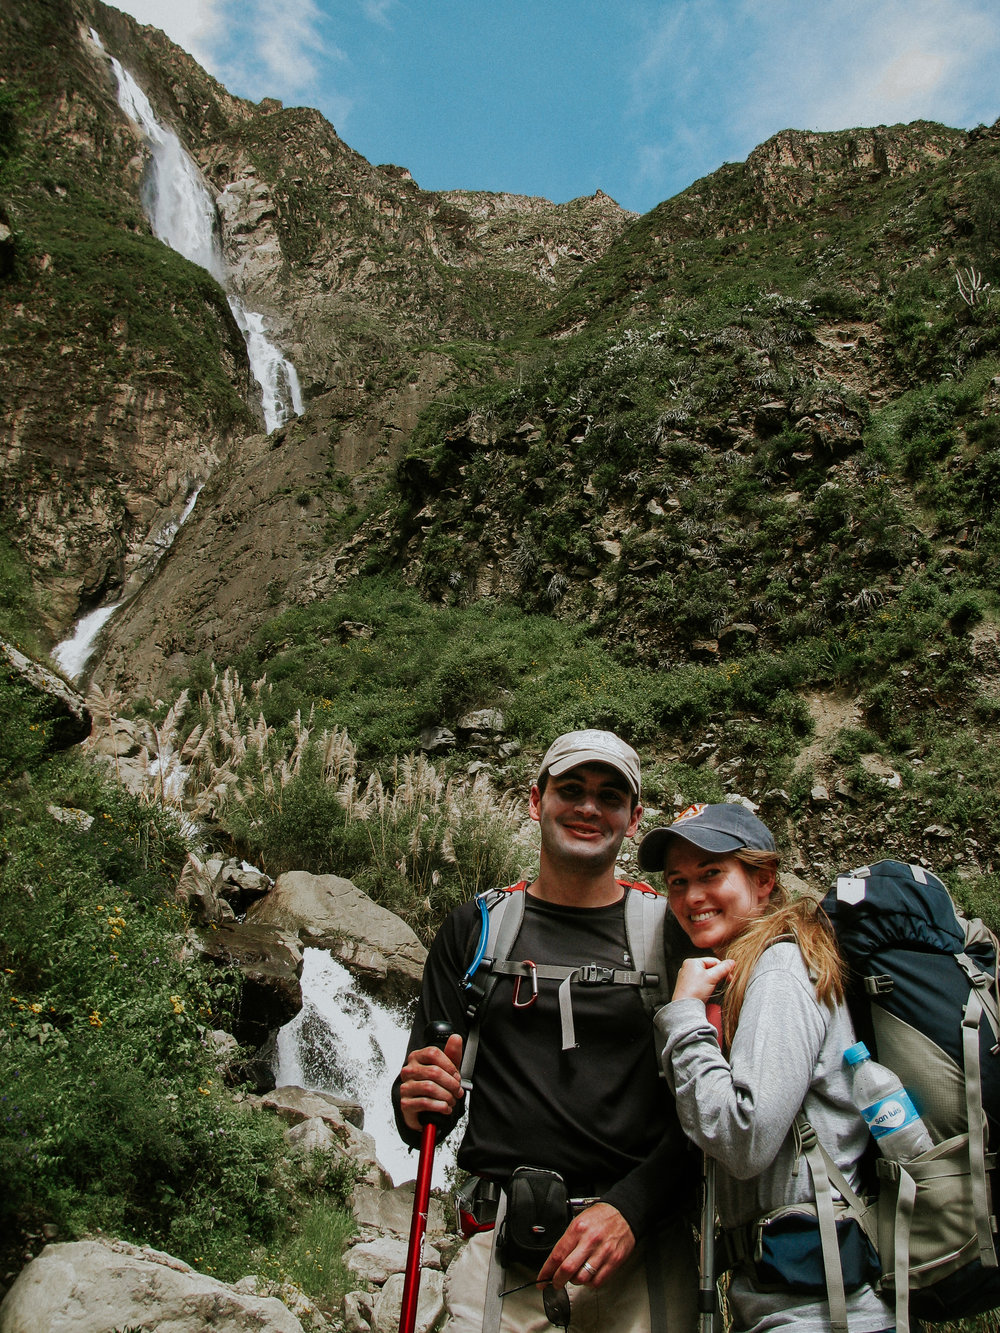 Hiking Adventure Elopement. Colca Canyon in Peru